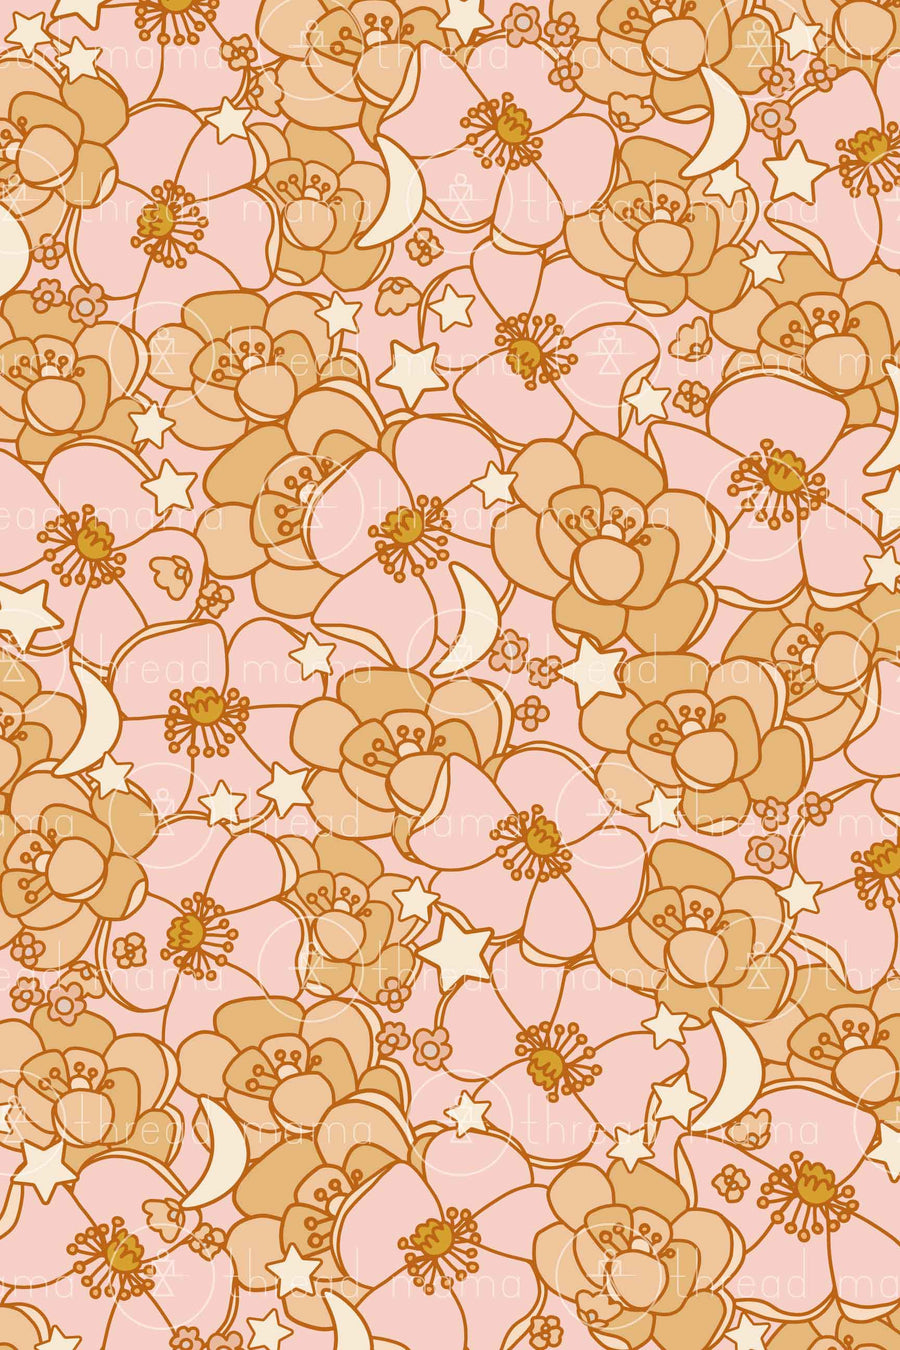 Fall Floral Background 3 (Printable Poster)